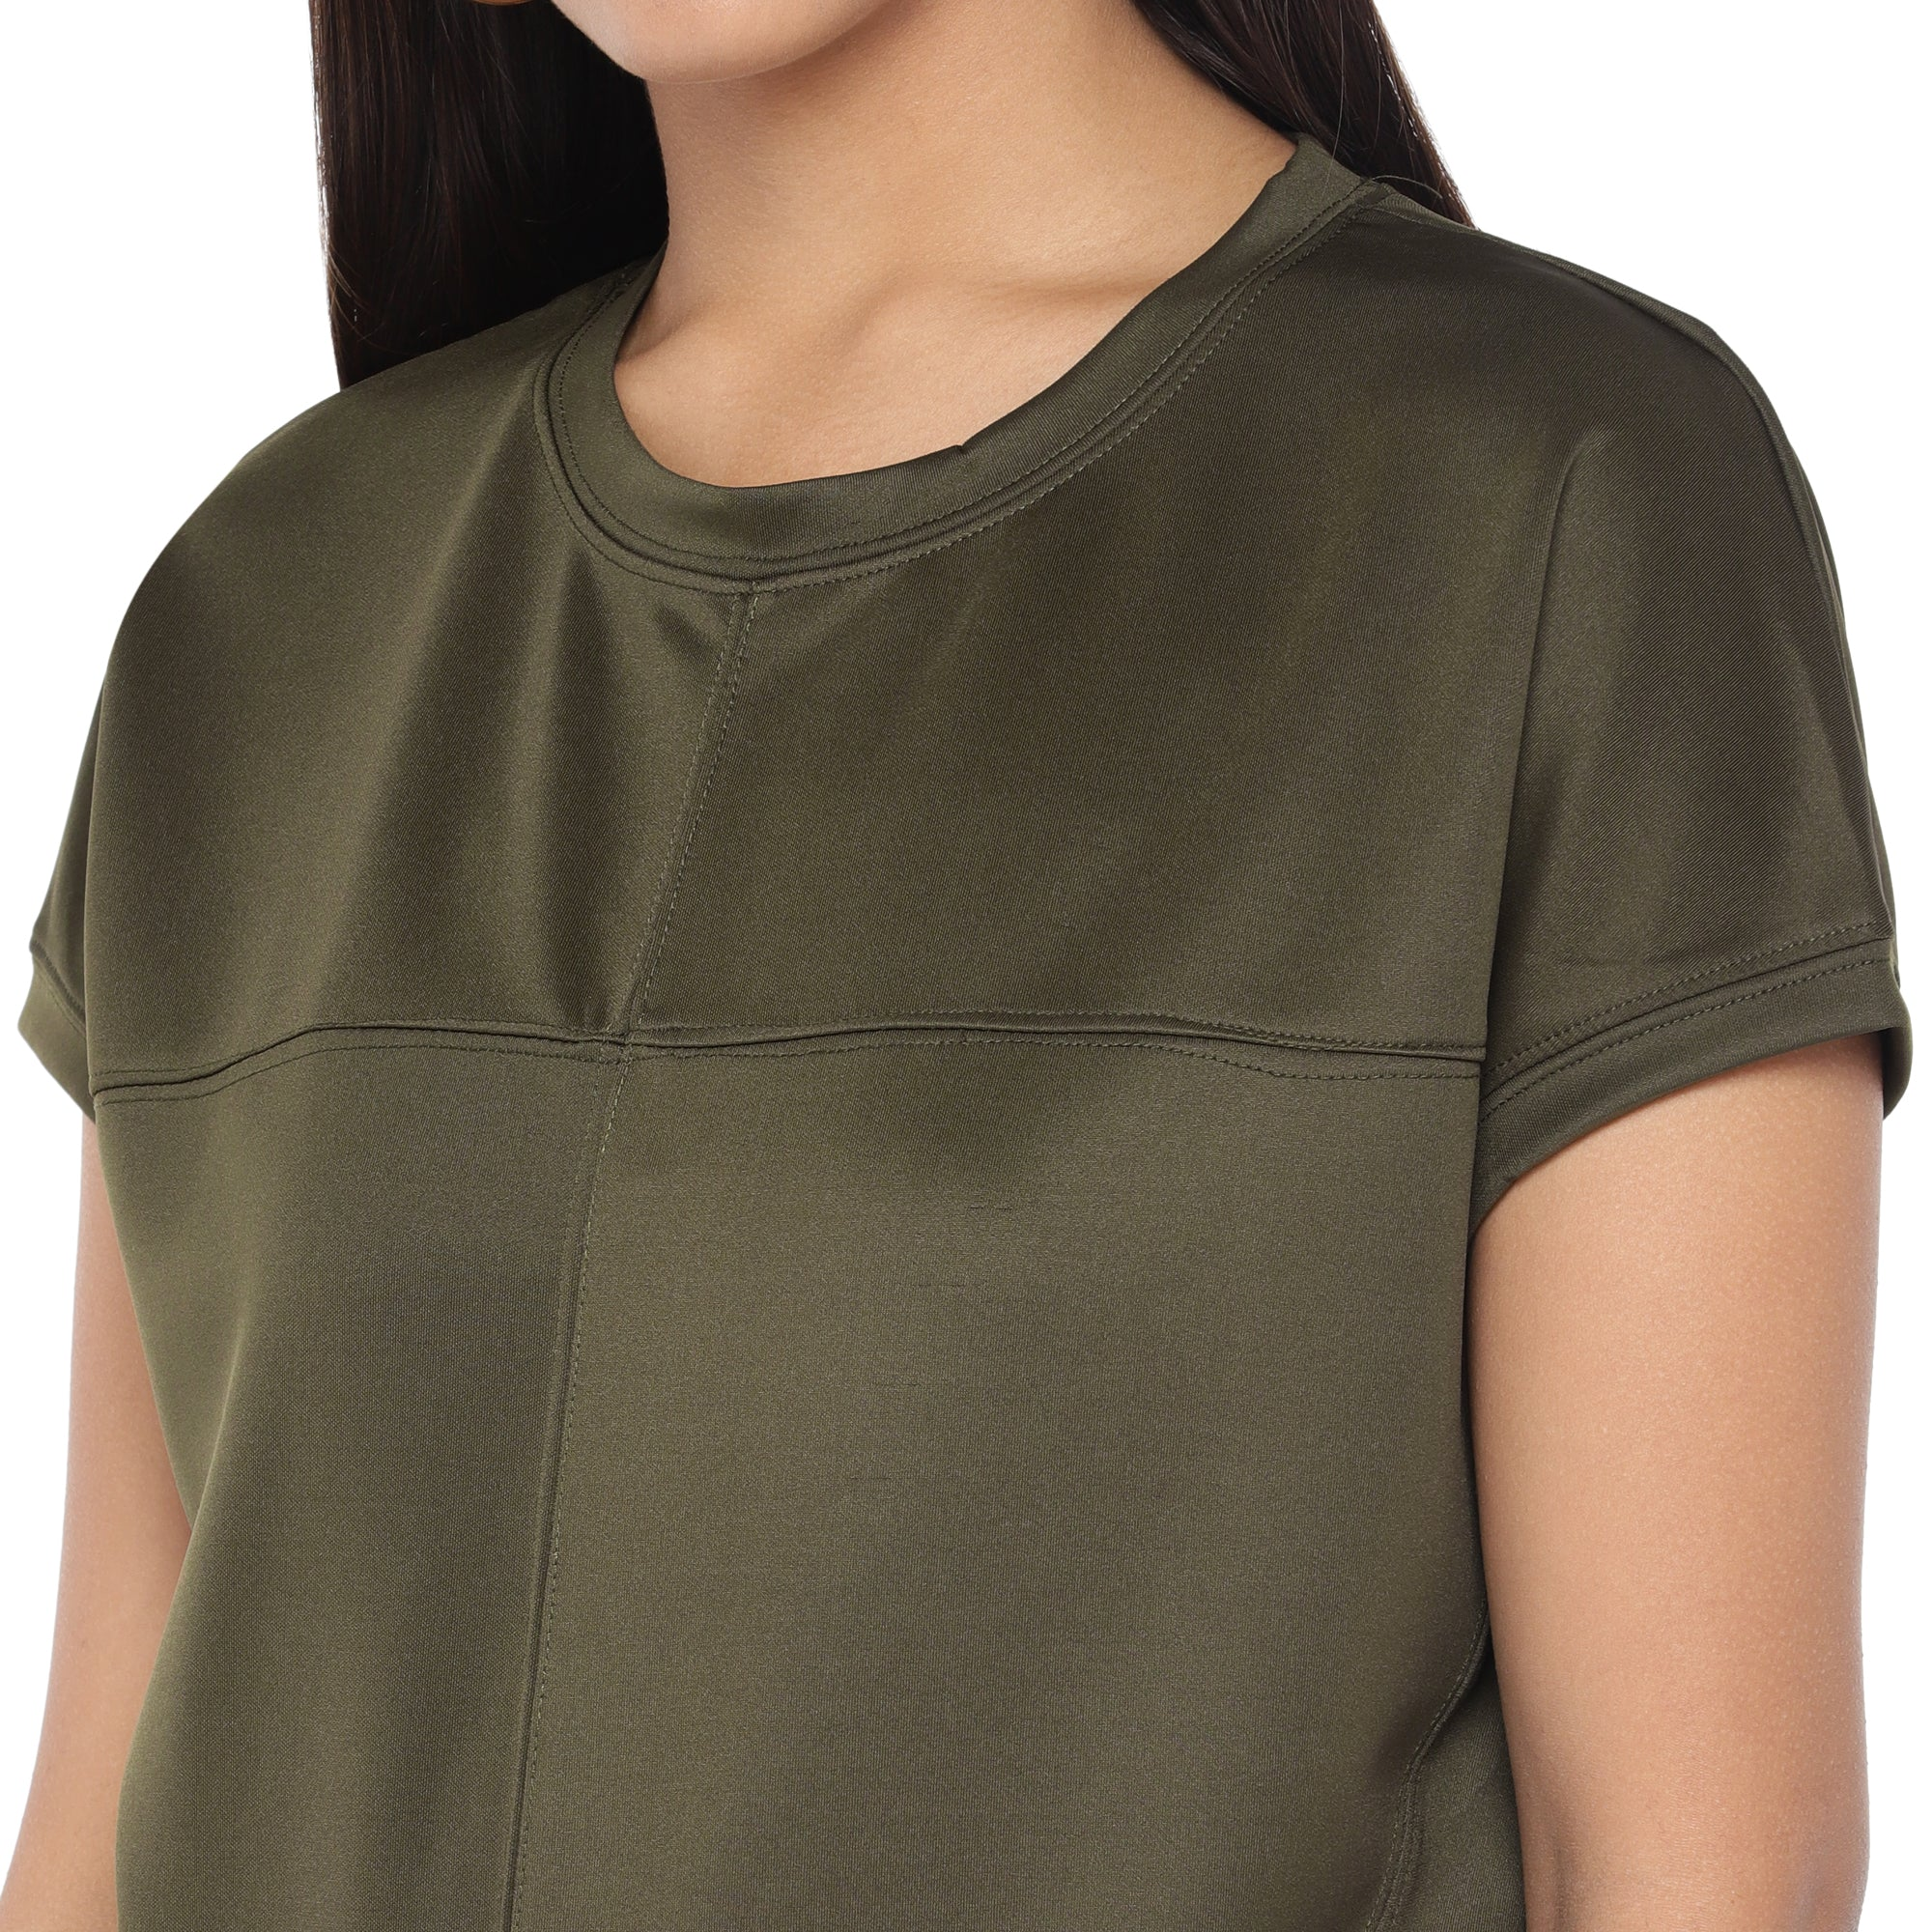 Olive Green Colourblocked Top-5